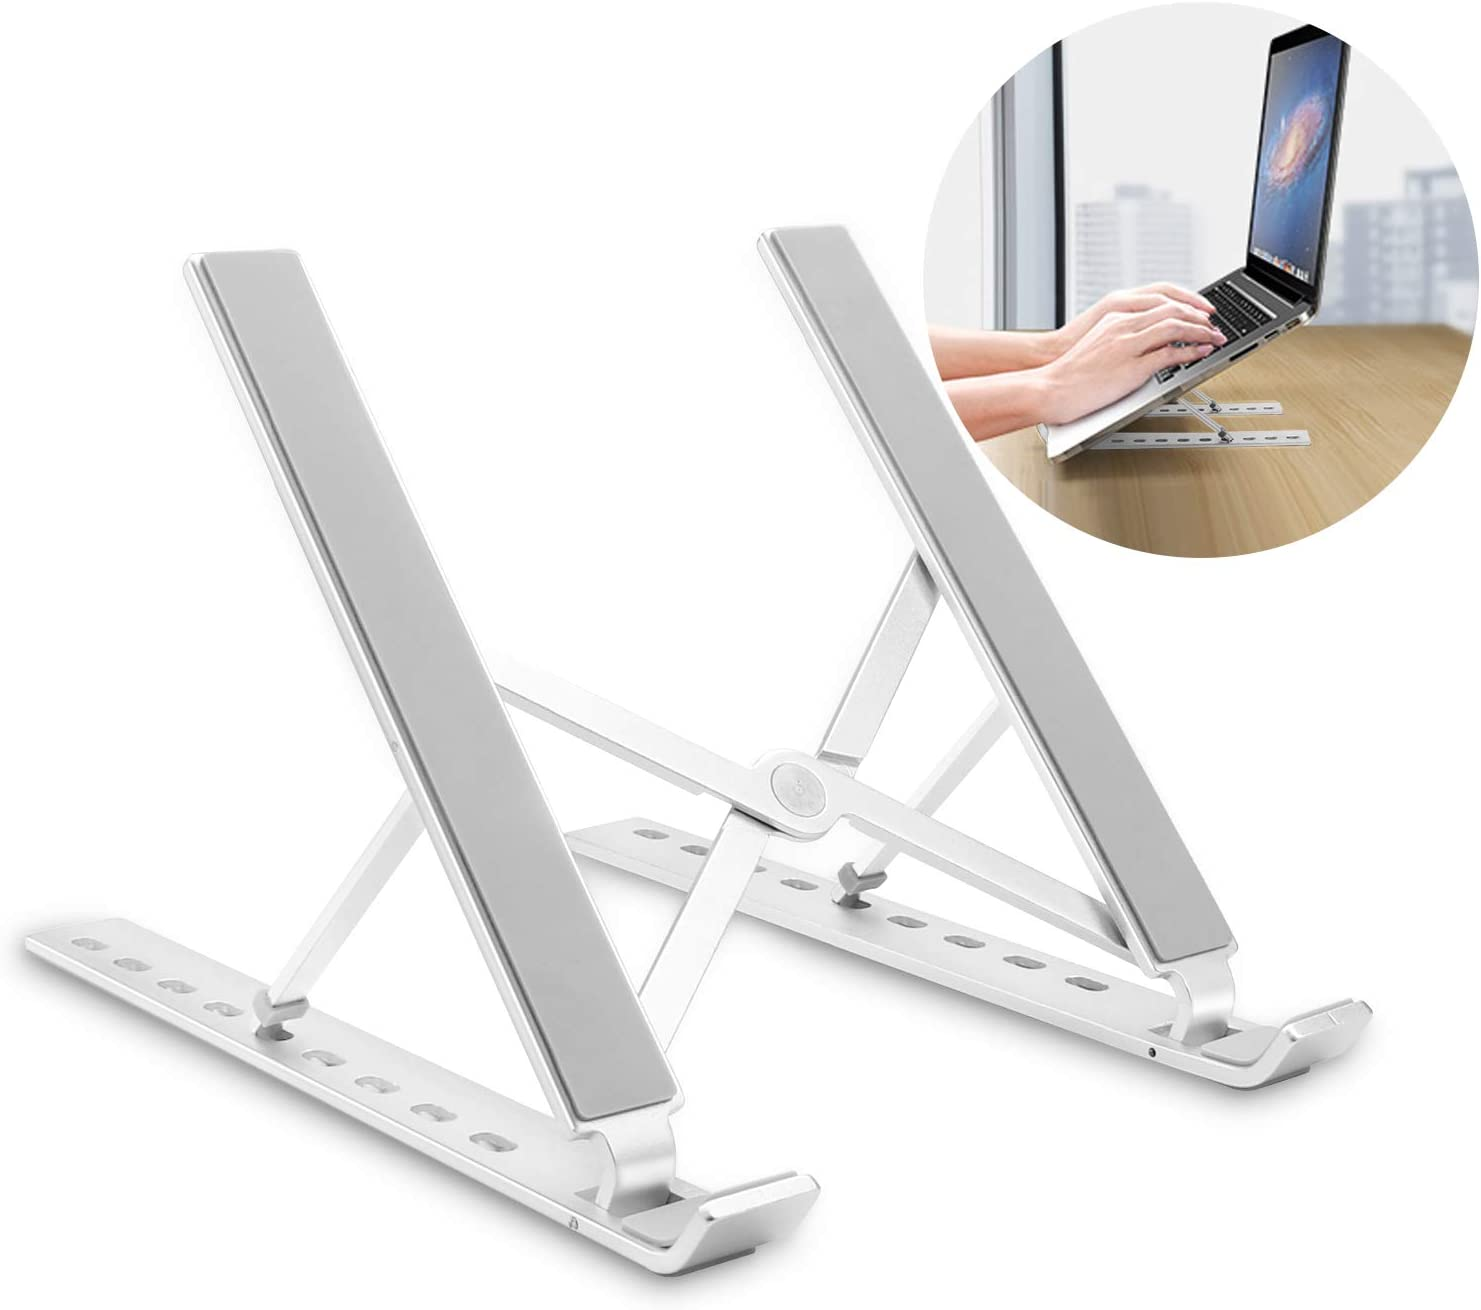 OUSI Portable Laptop Stand, Upgraded Laptopr Riser, 9-Angles Adjustable, Compatible with MacBook Air Pro, HP, Dell, More 10-15.6 Inch Laptop - Silver